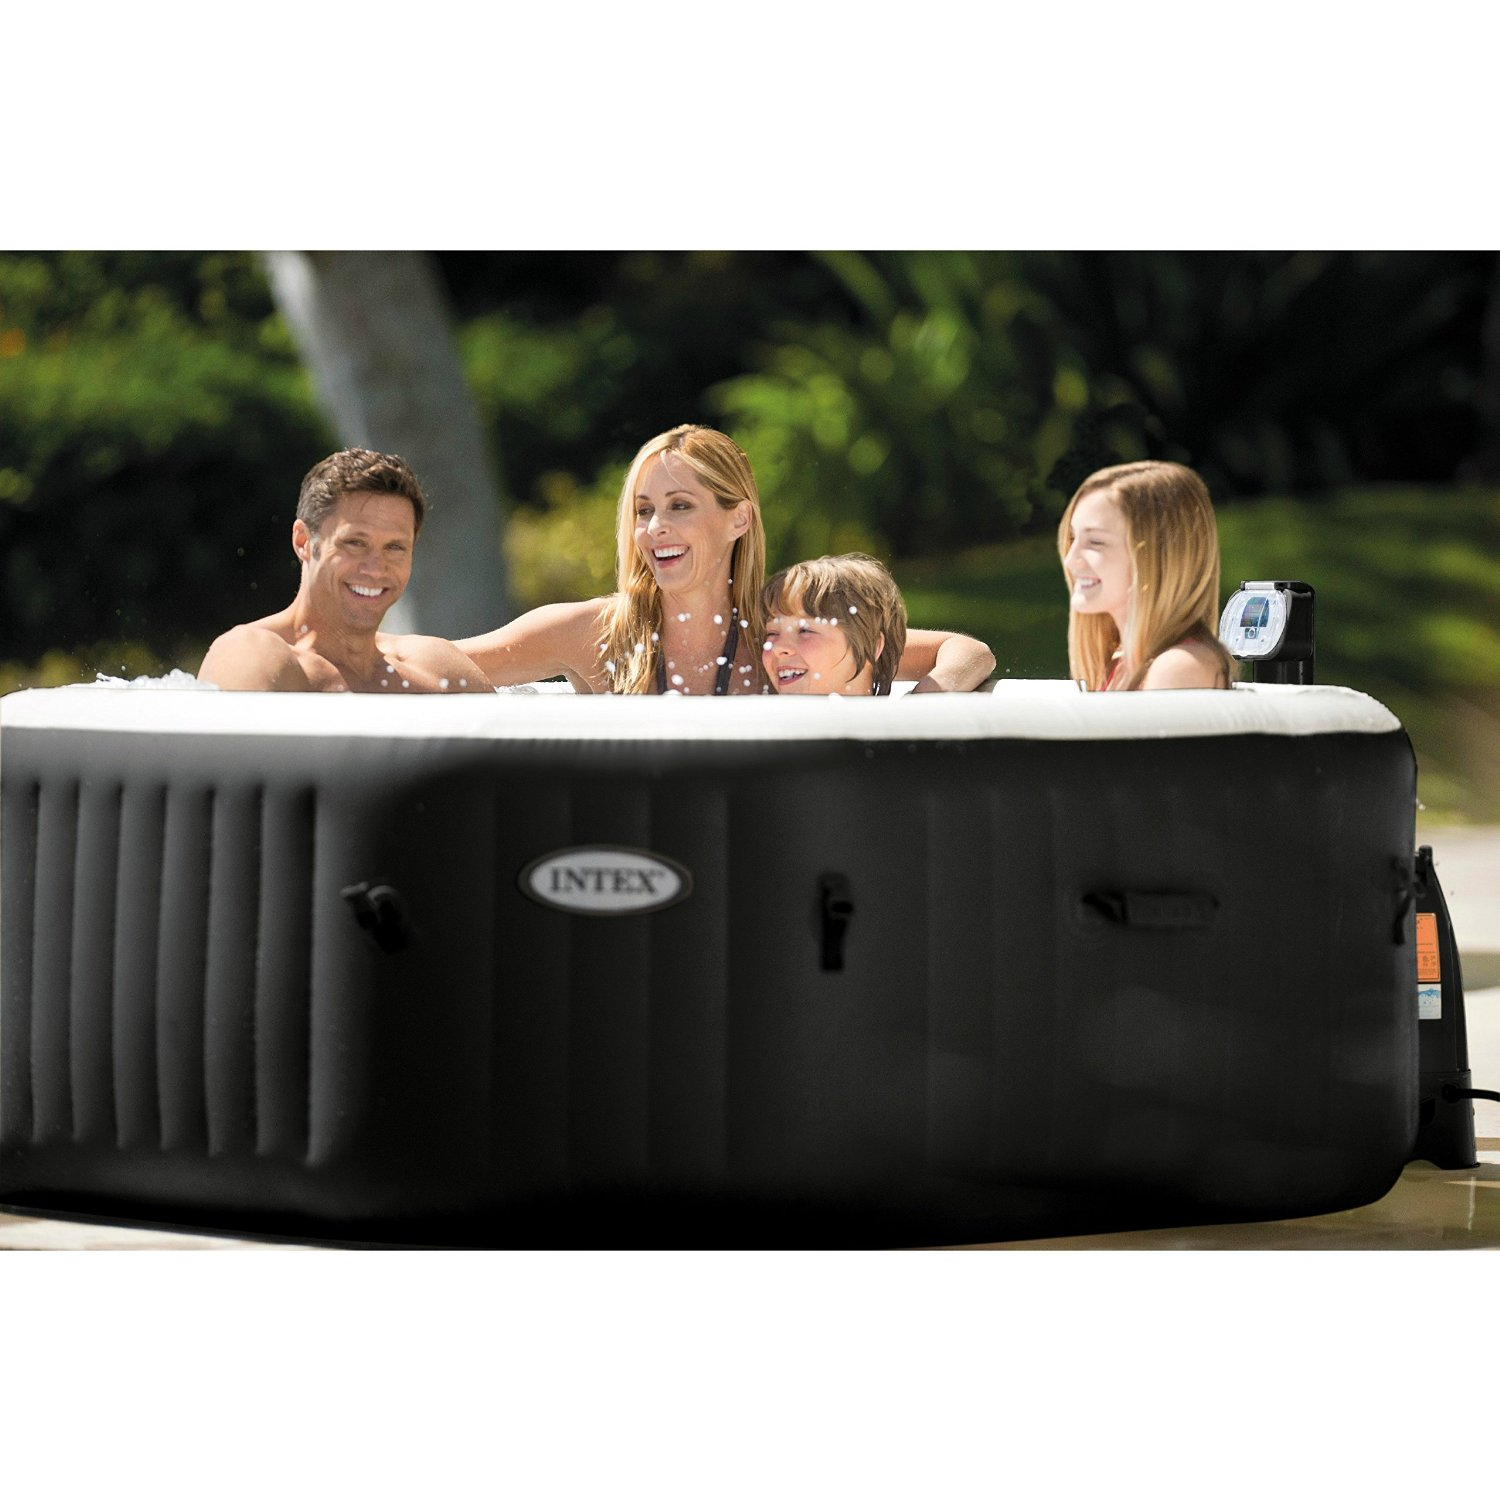 Jacuzzi Pool Deluxe Intex Purespa Jet And Bubble Deluxe Portable Hot Tub